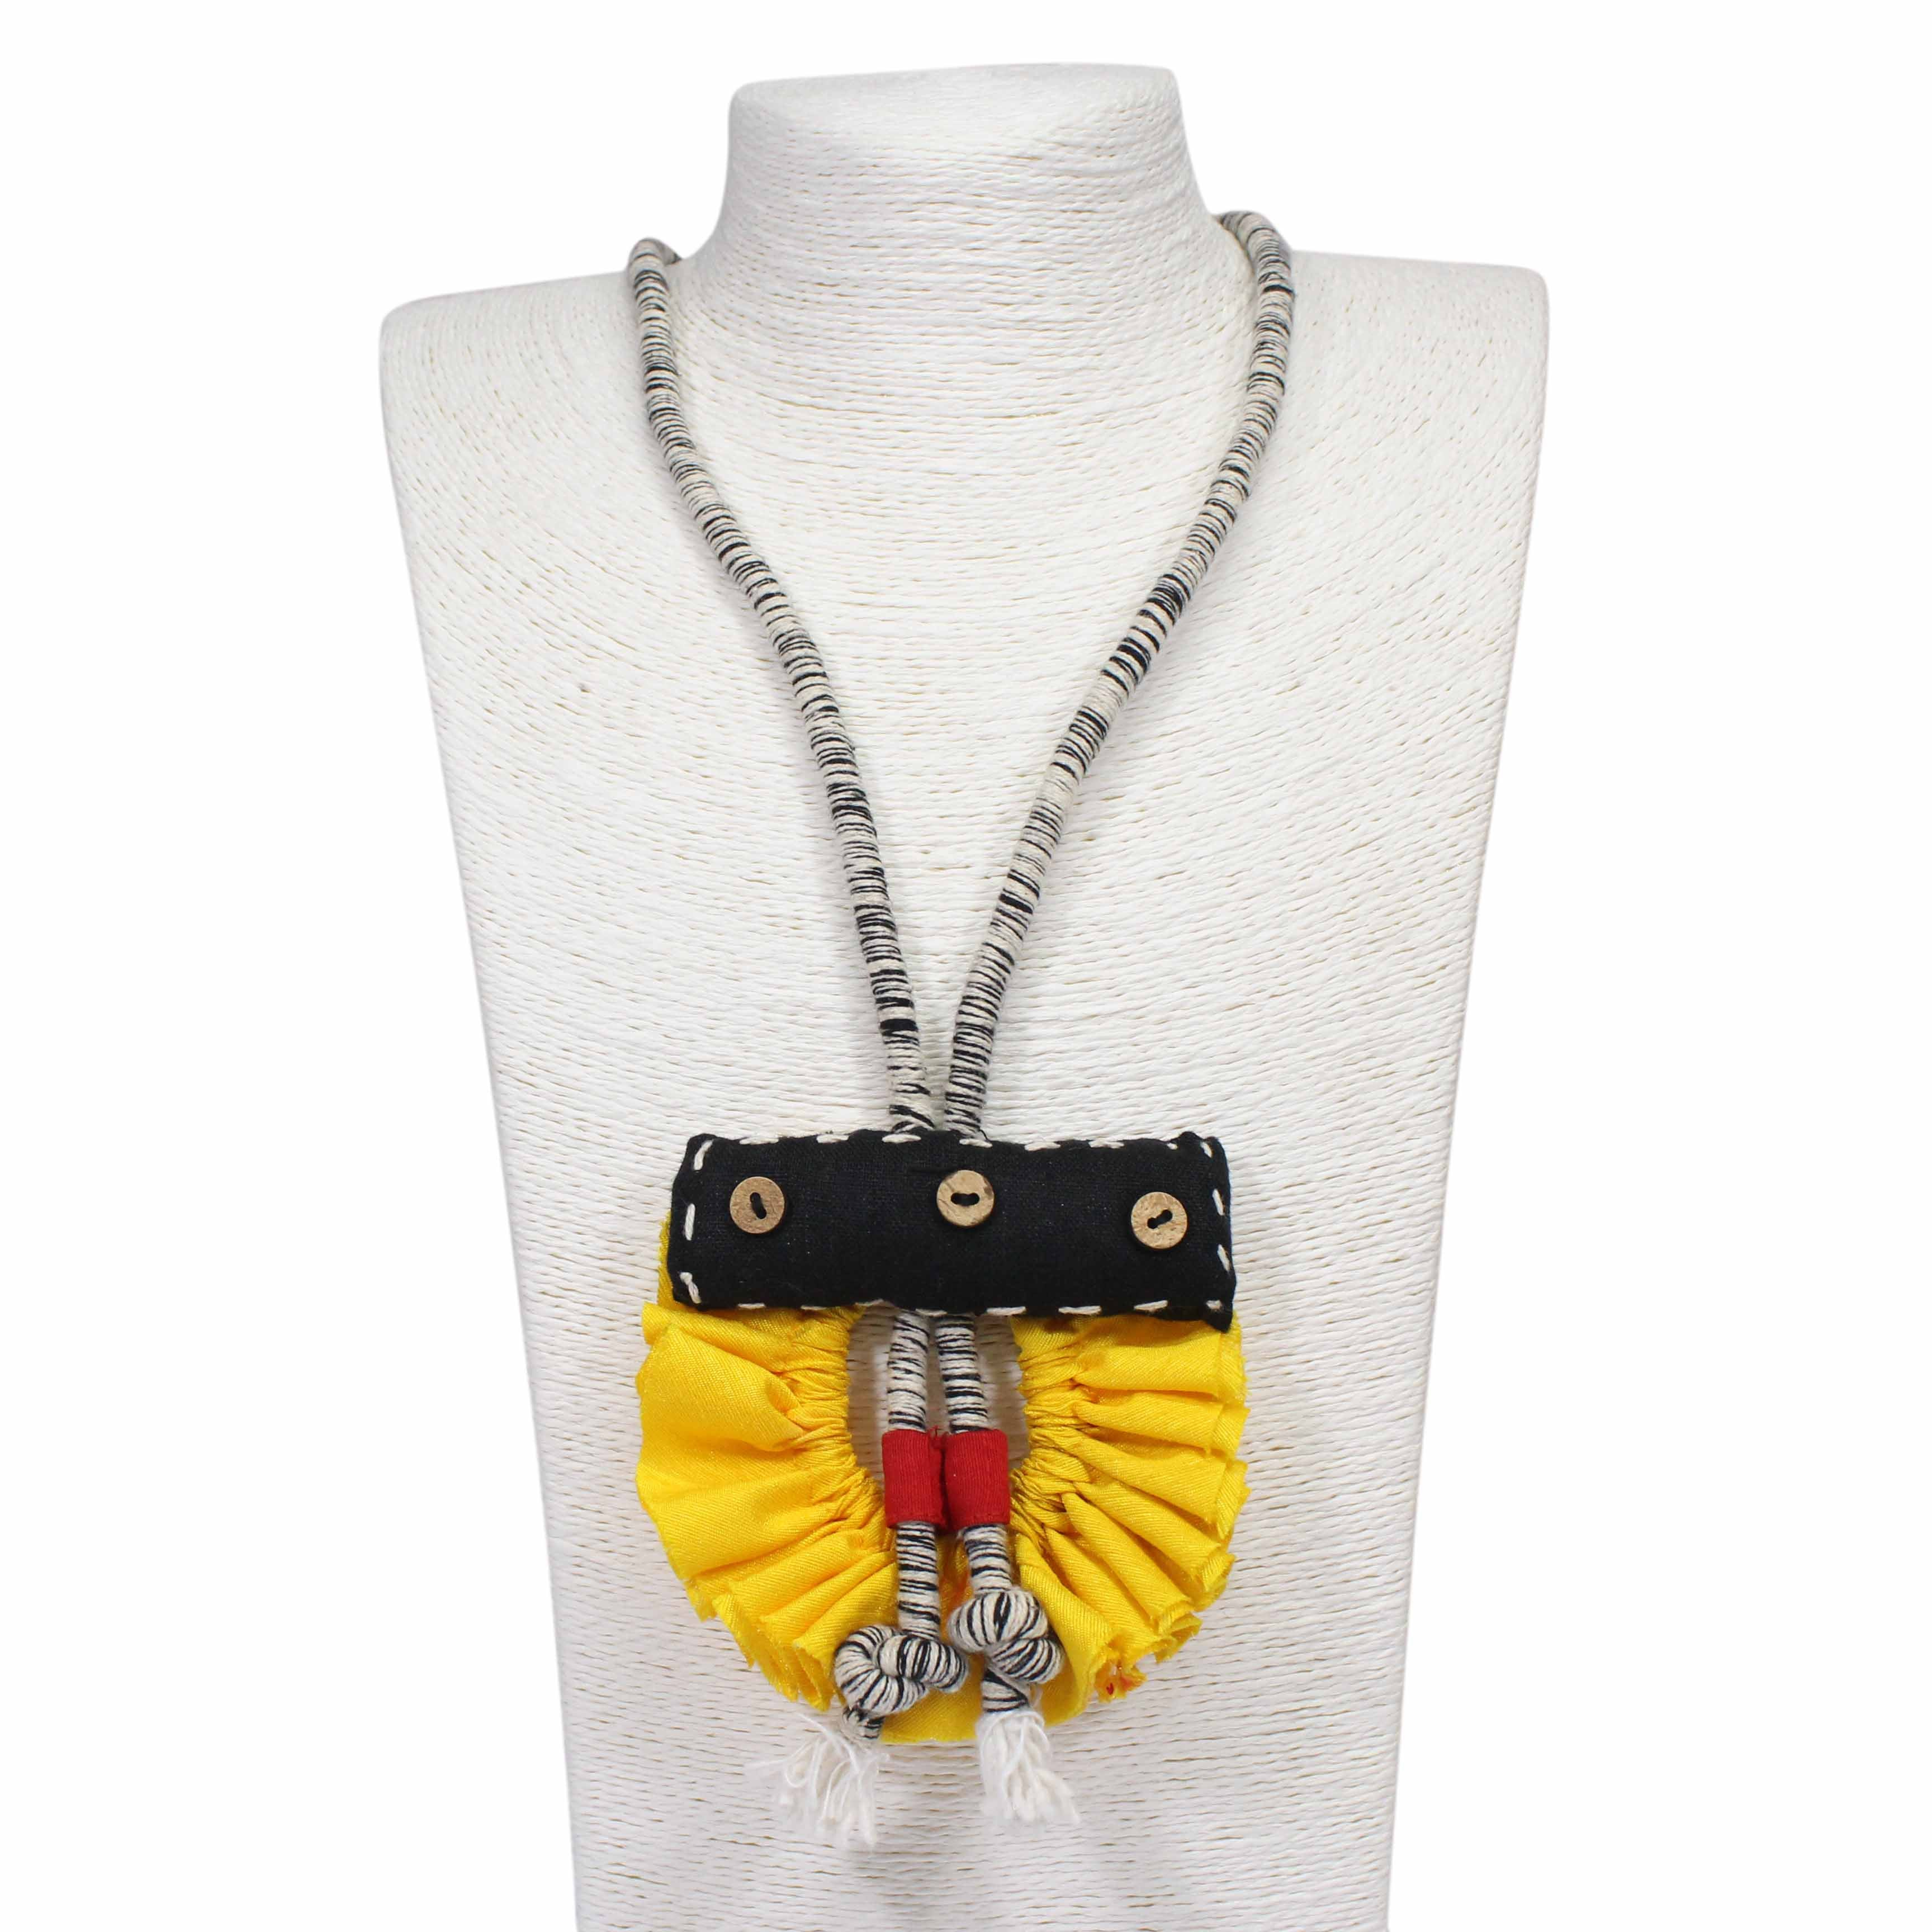 Hand Crafted Yellow Cotton Silk Ruffle With Black And White Yarn String Necklace